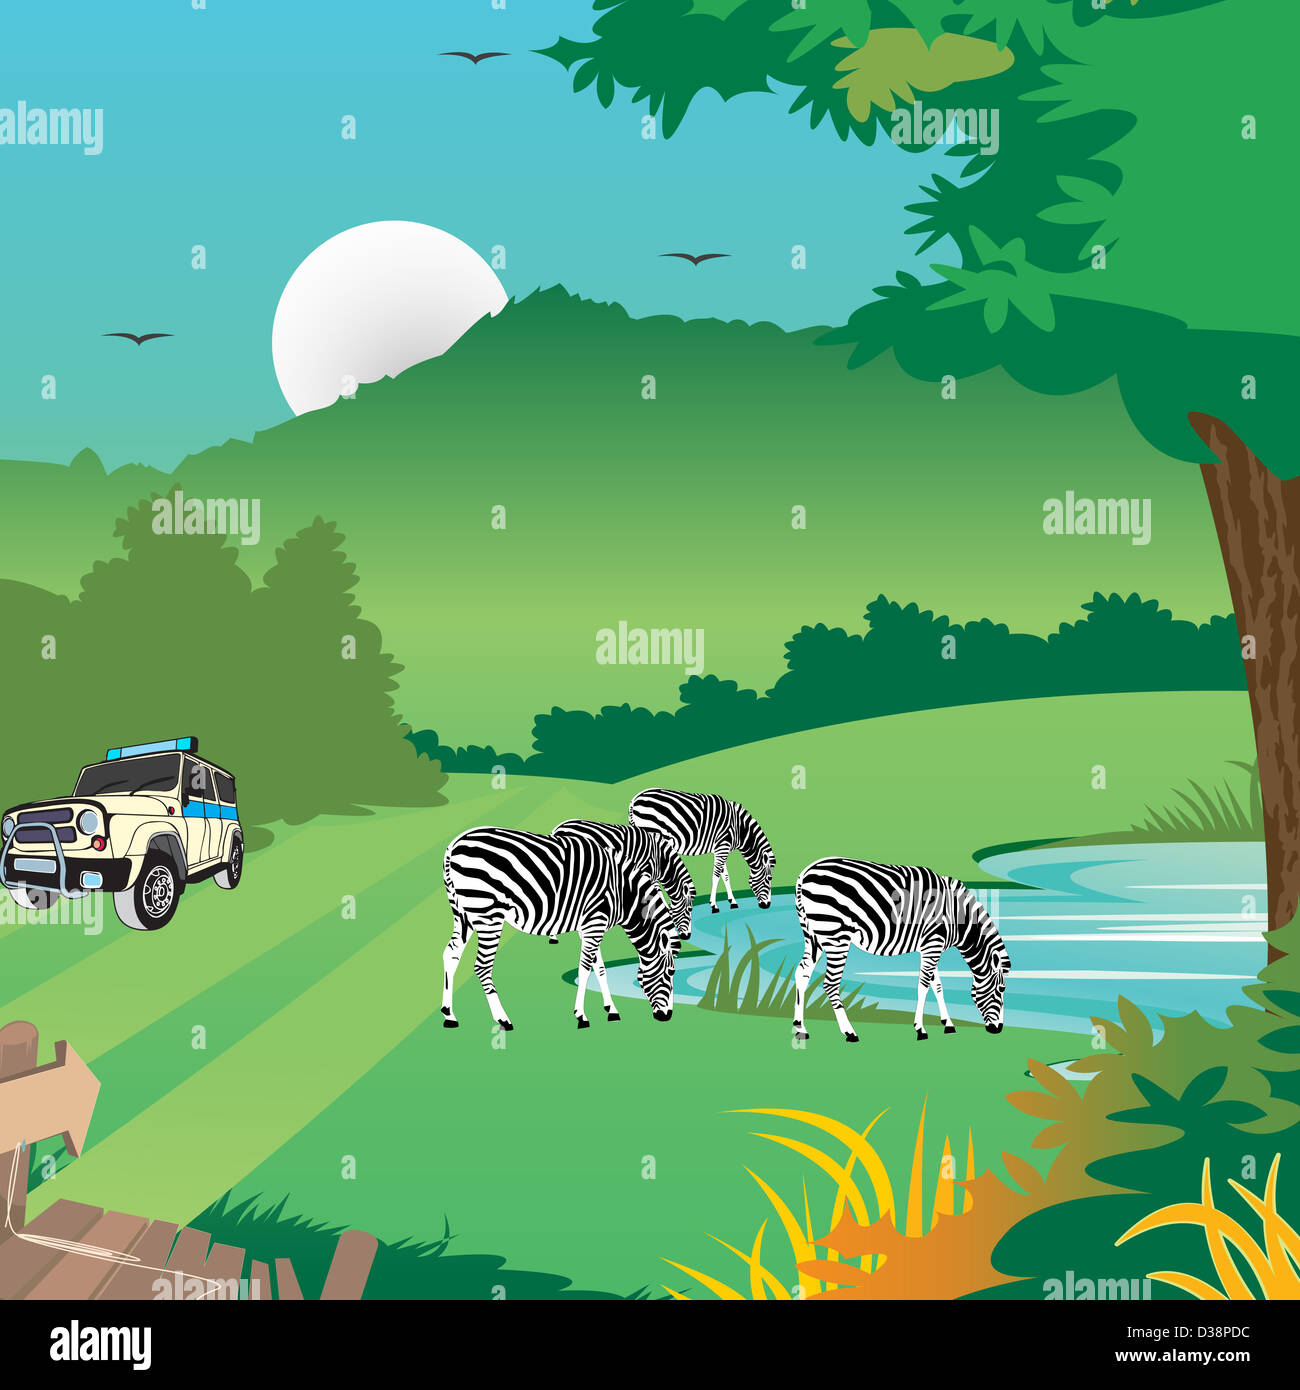 Zebras with a jeep in a forest - Stock Image